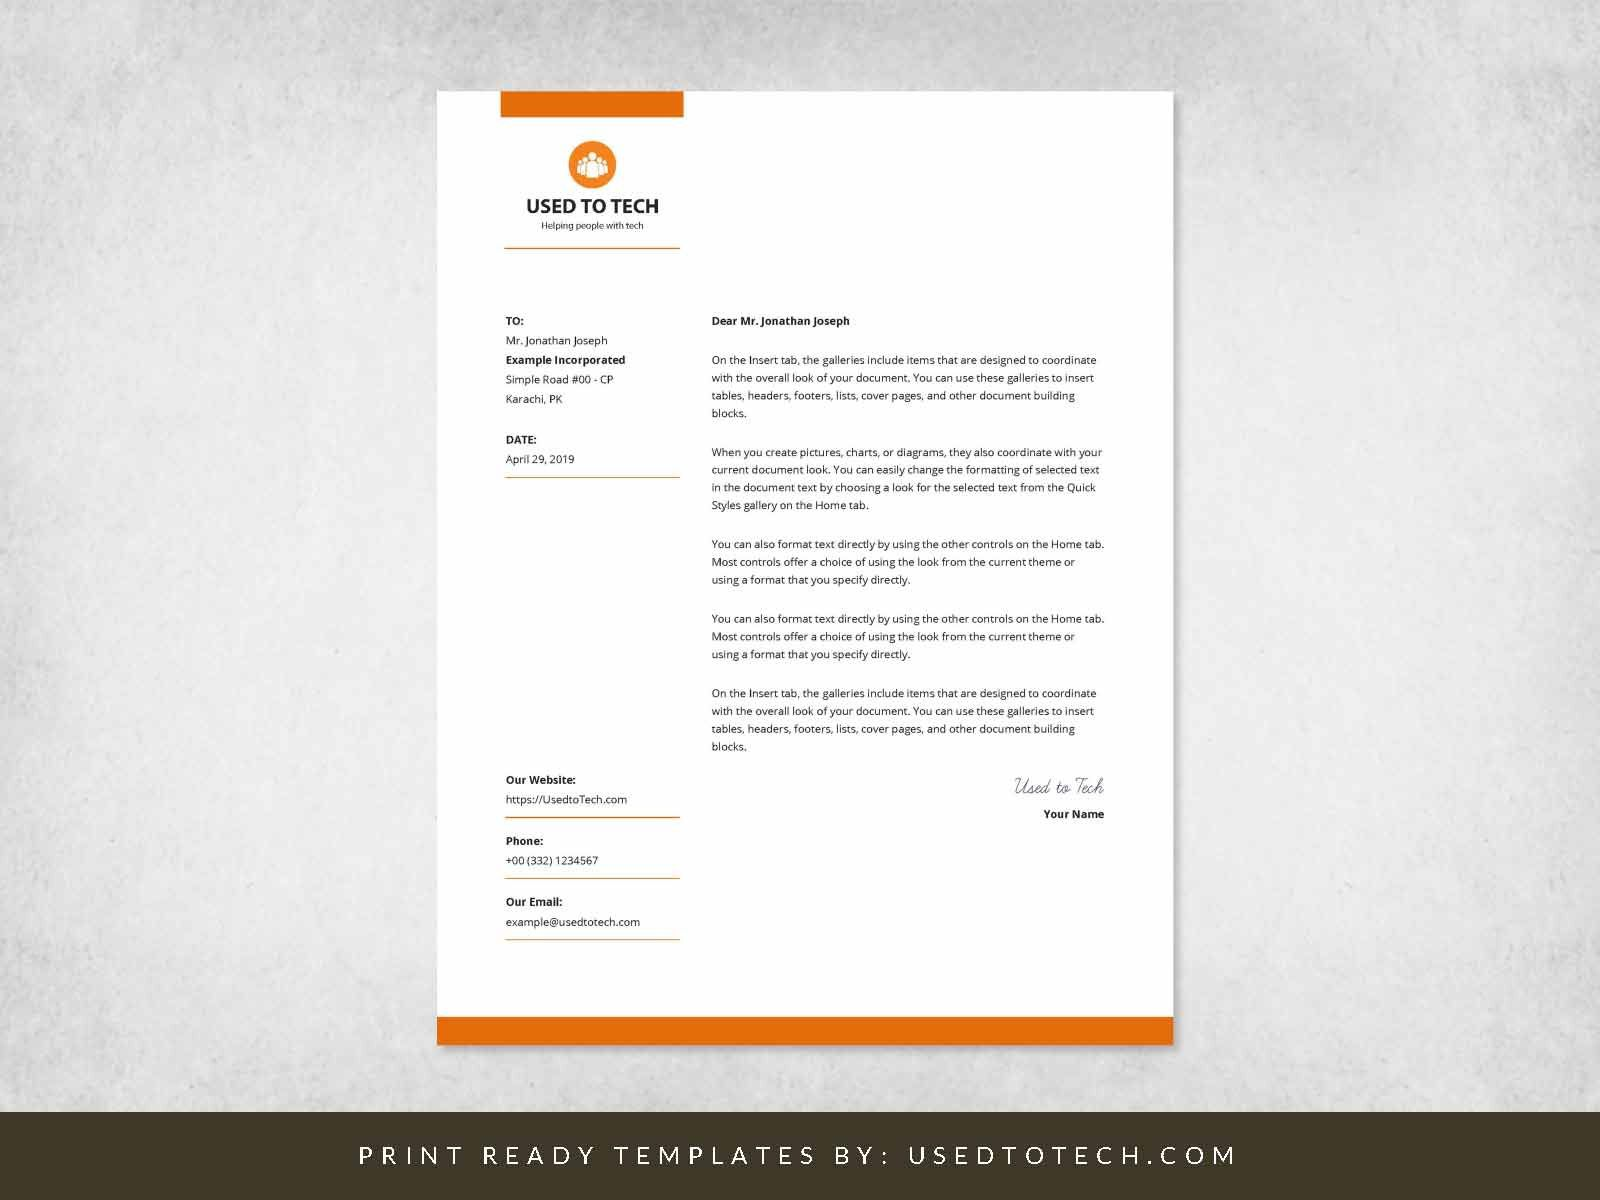 001 Imposing Letterhead Template Free Download Word Image  Restaurant Microsoft Format InFull